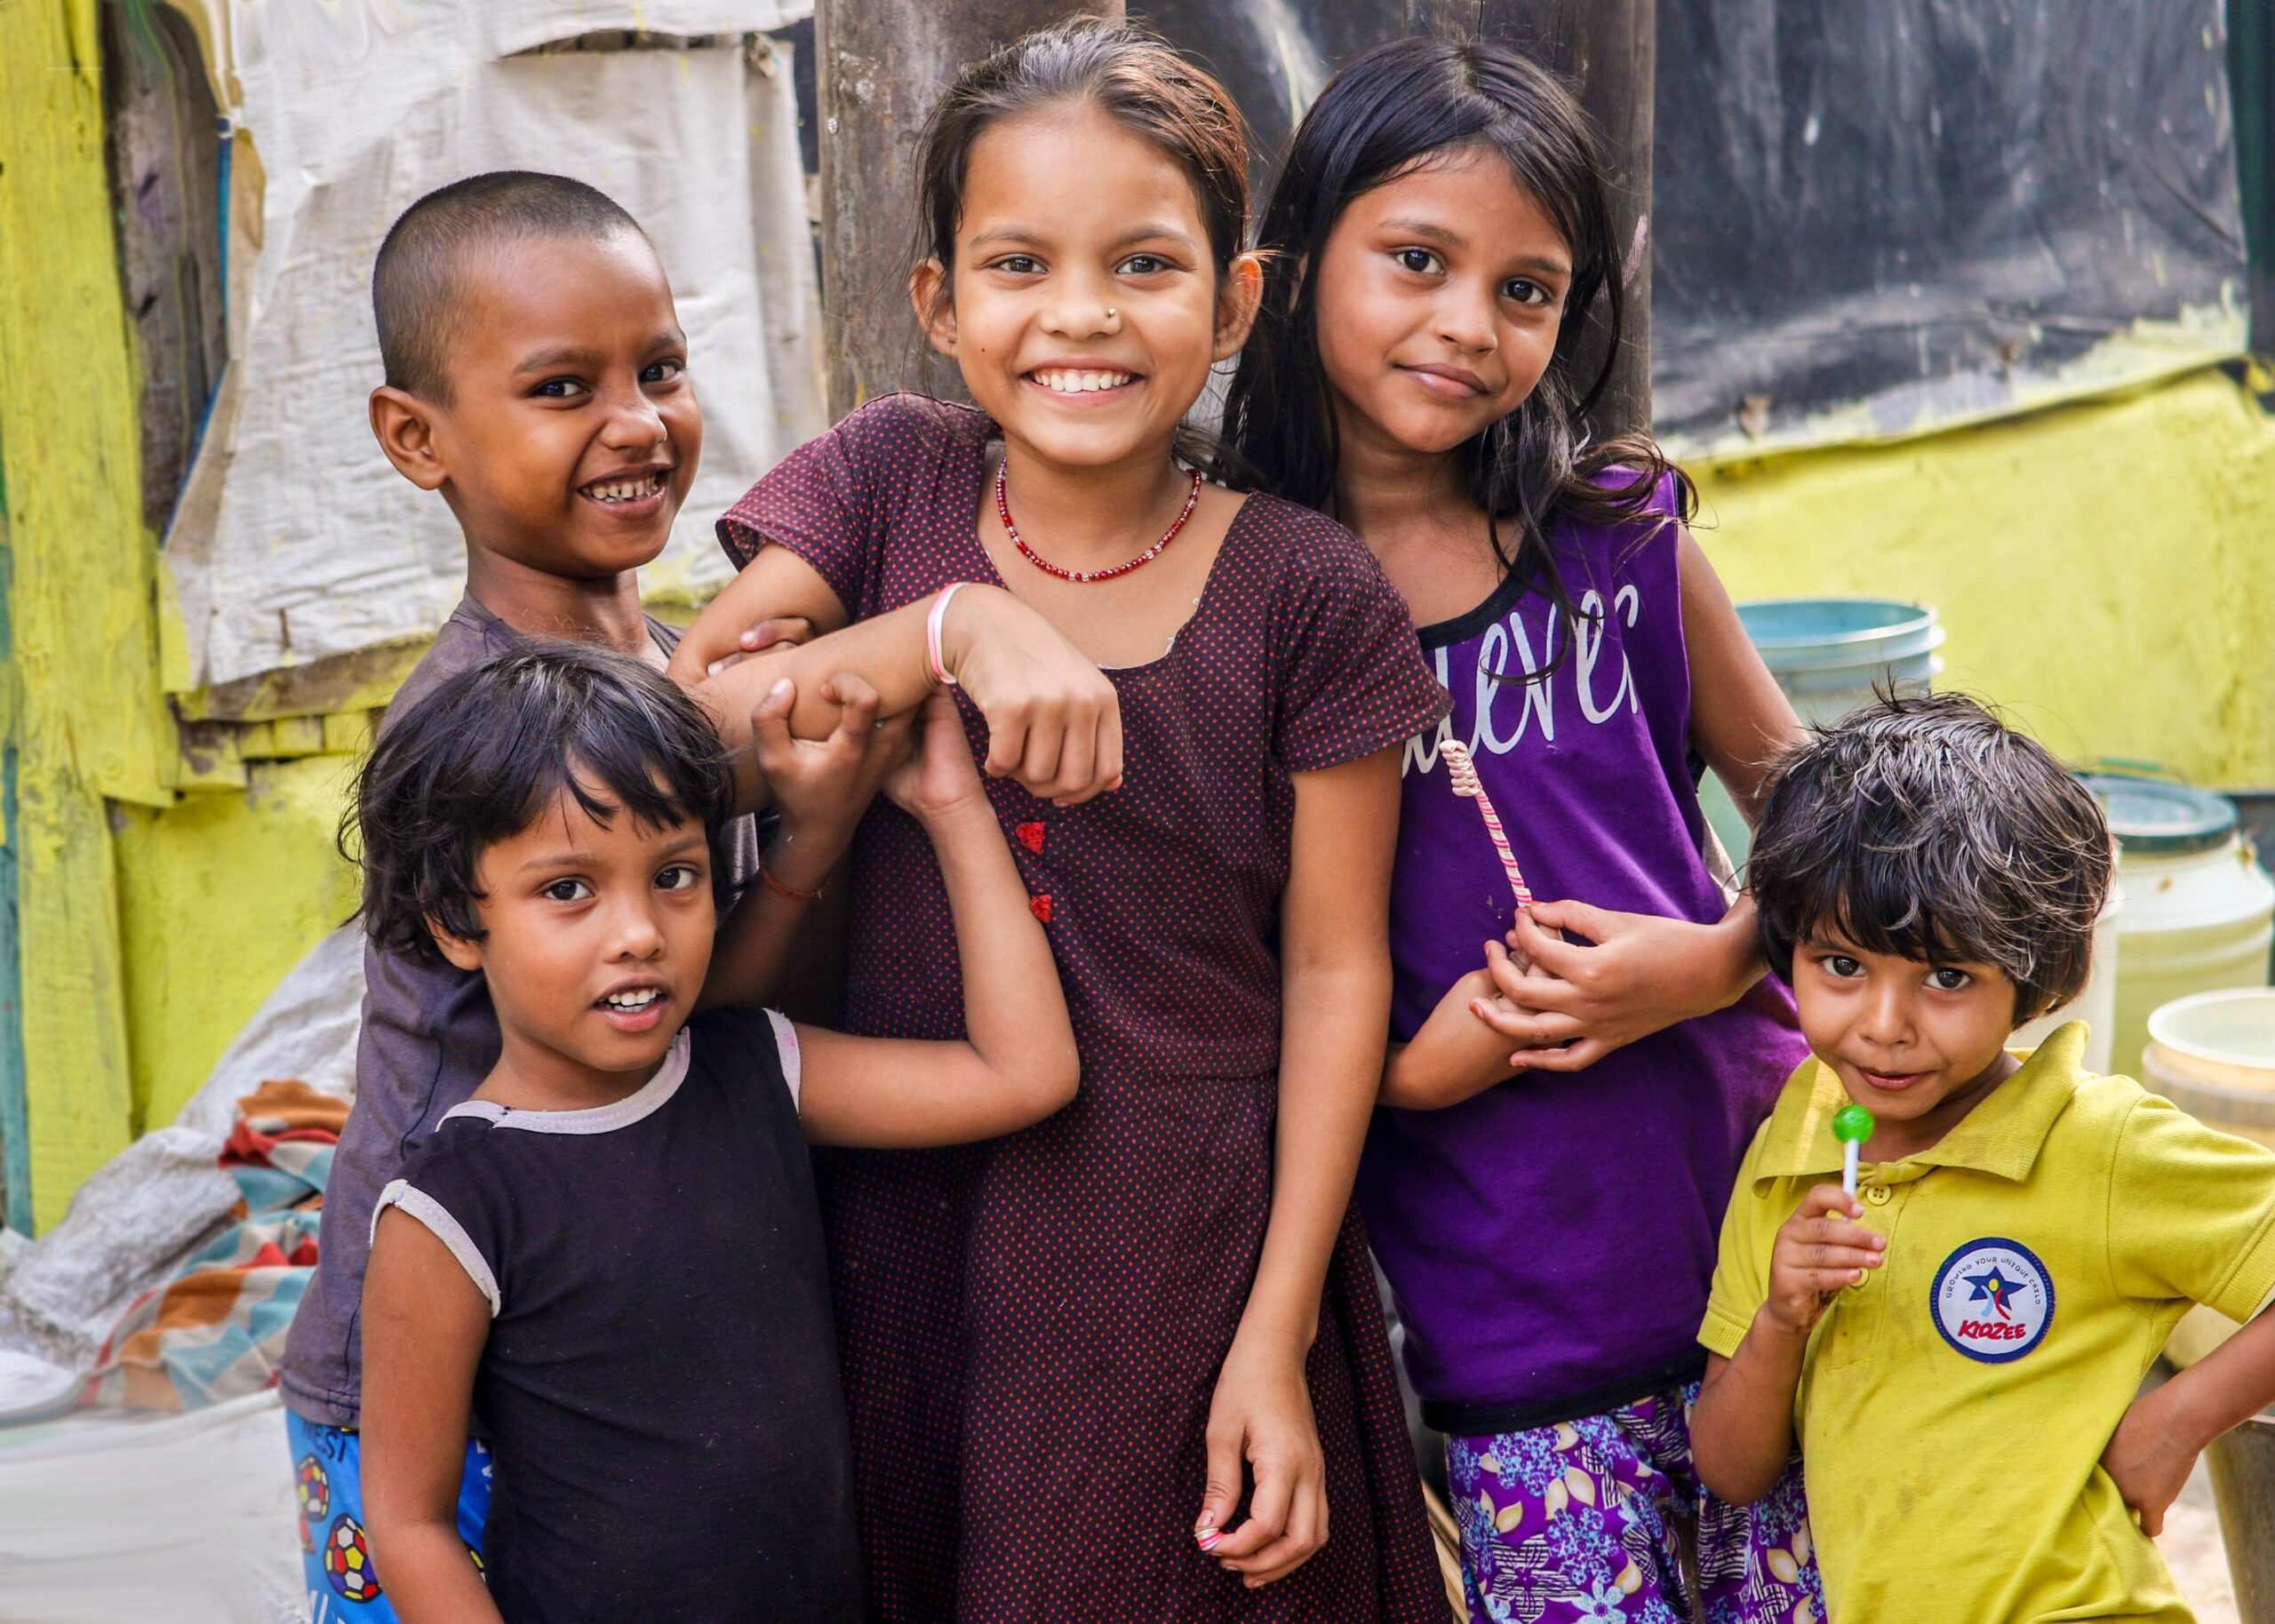 Group of kids in India